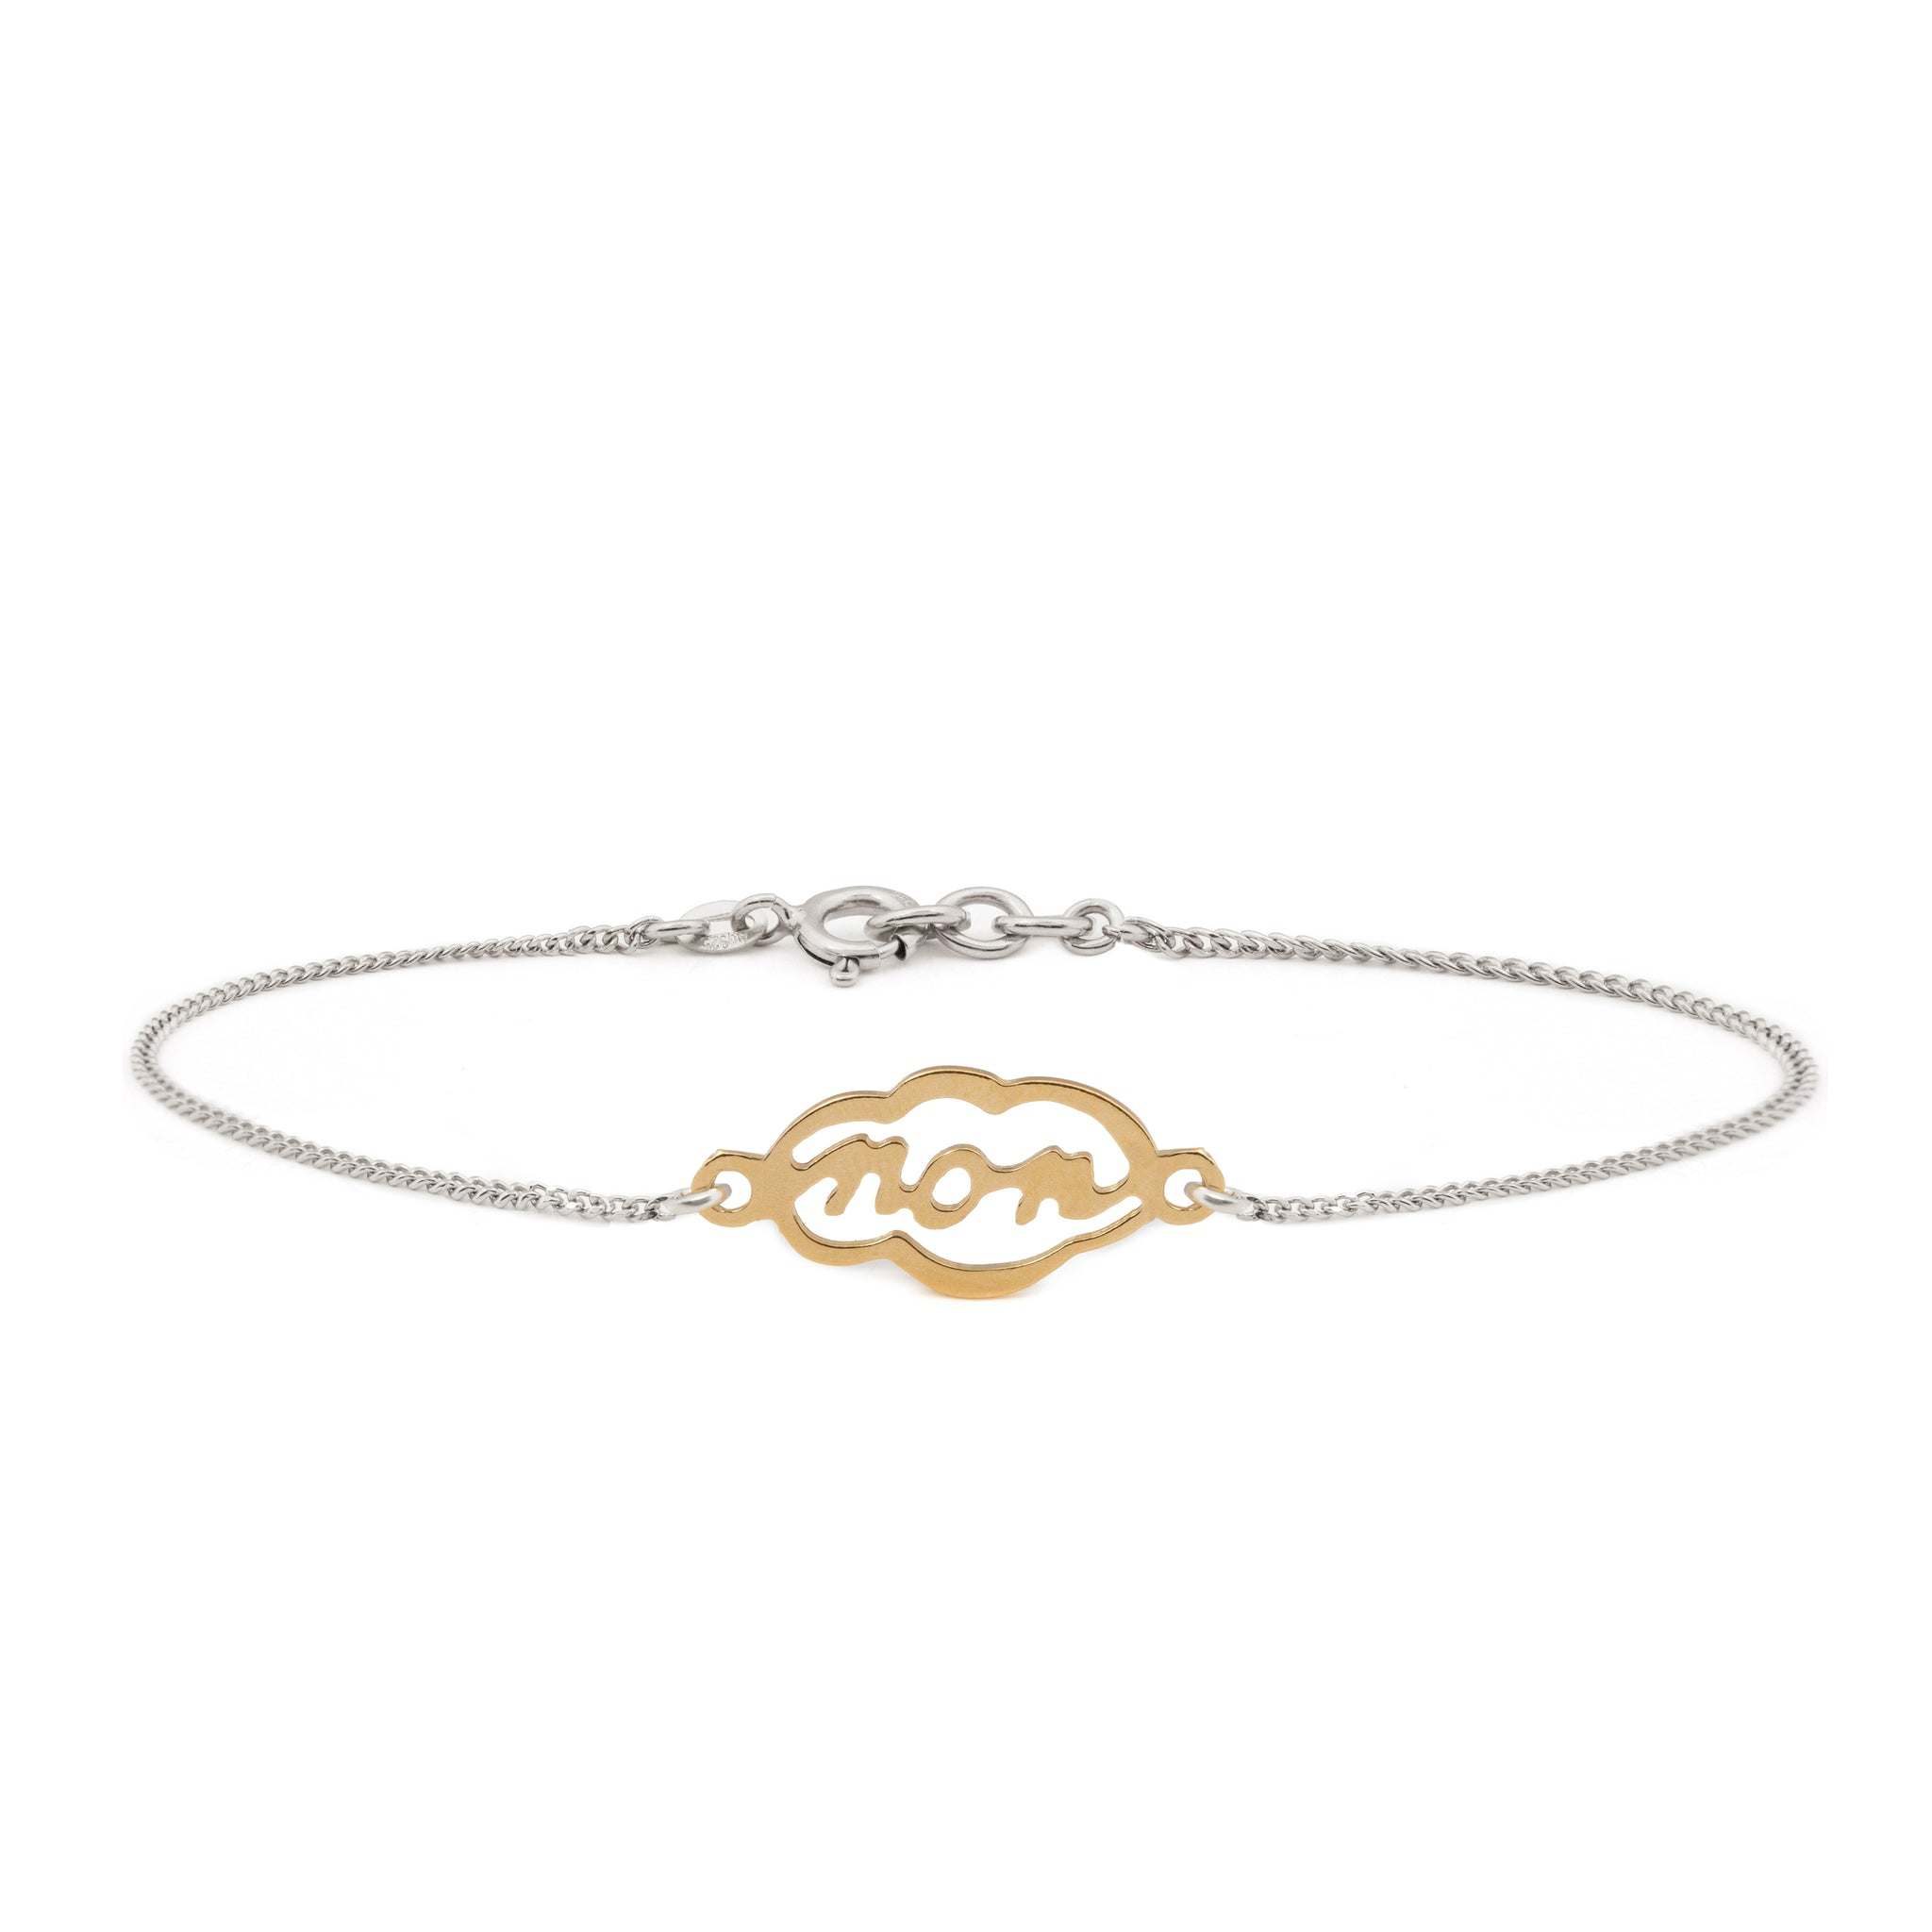 minc delicatefinal delicate studio gold products bracelet